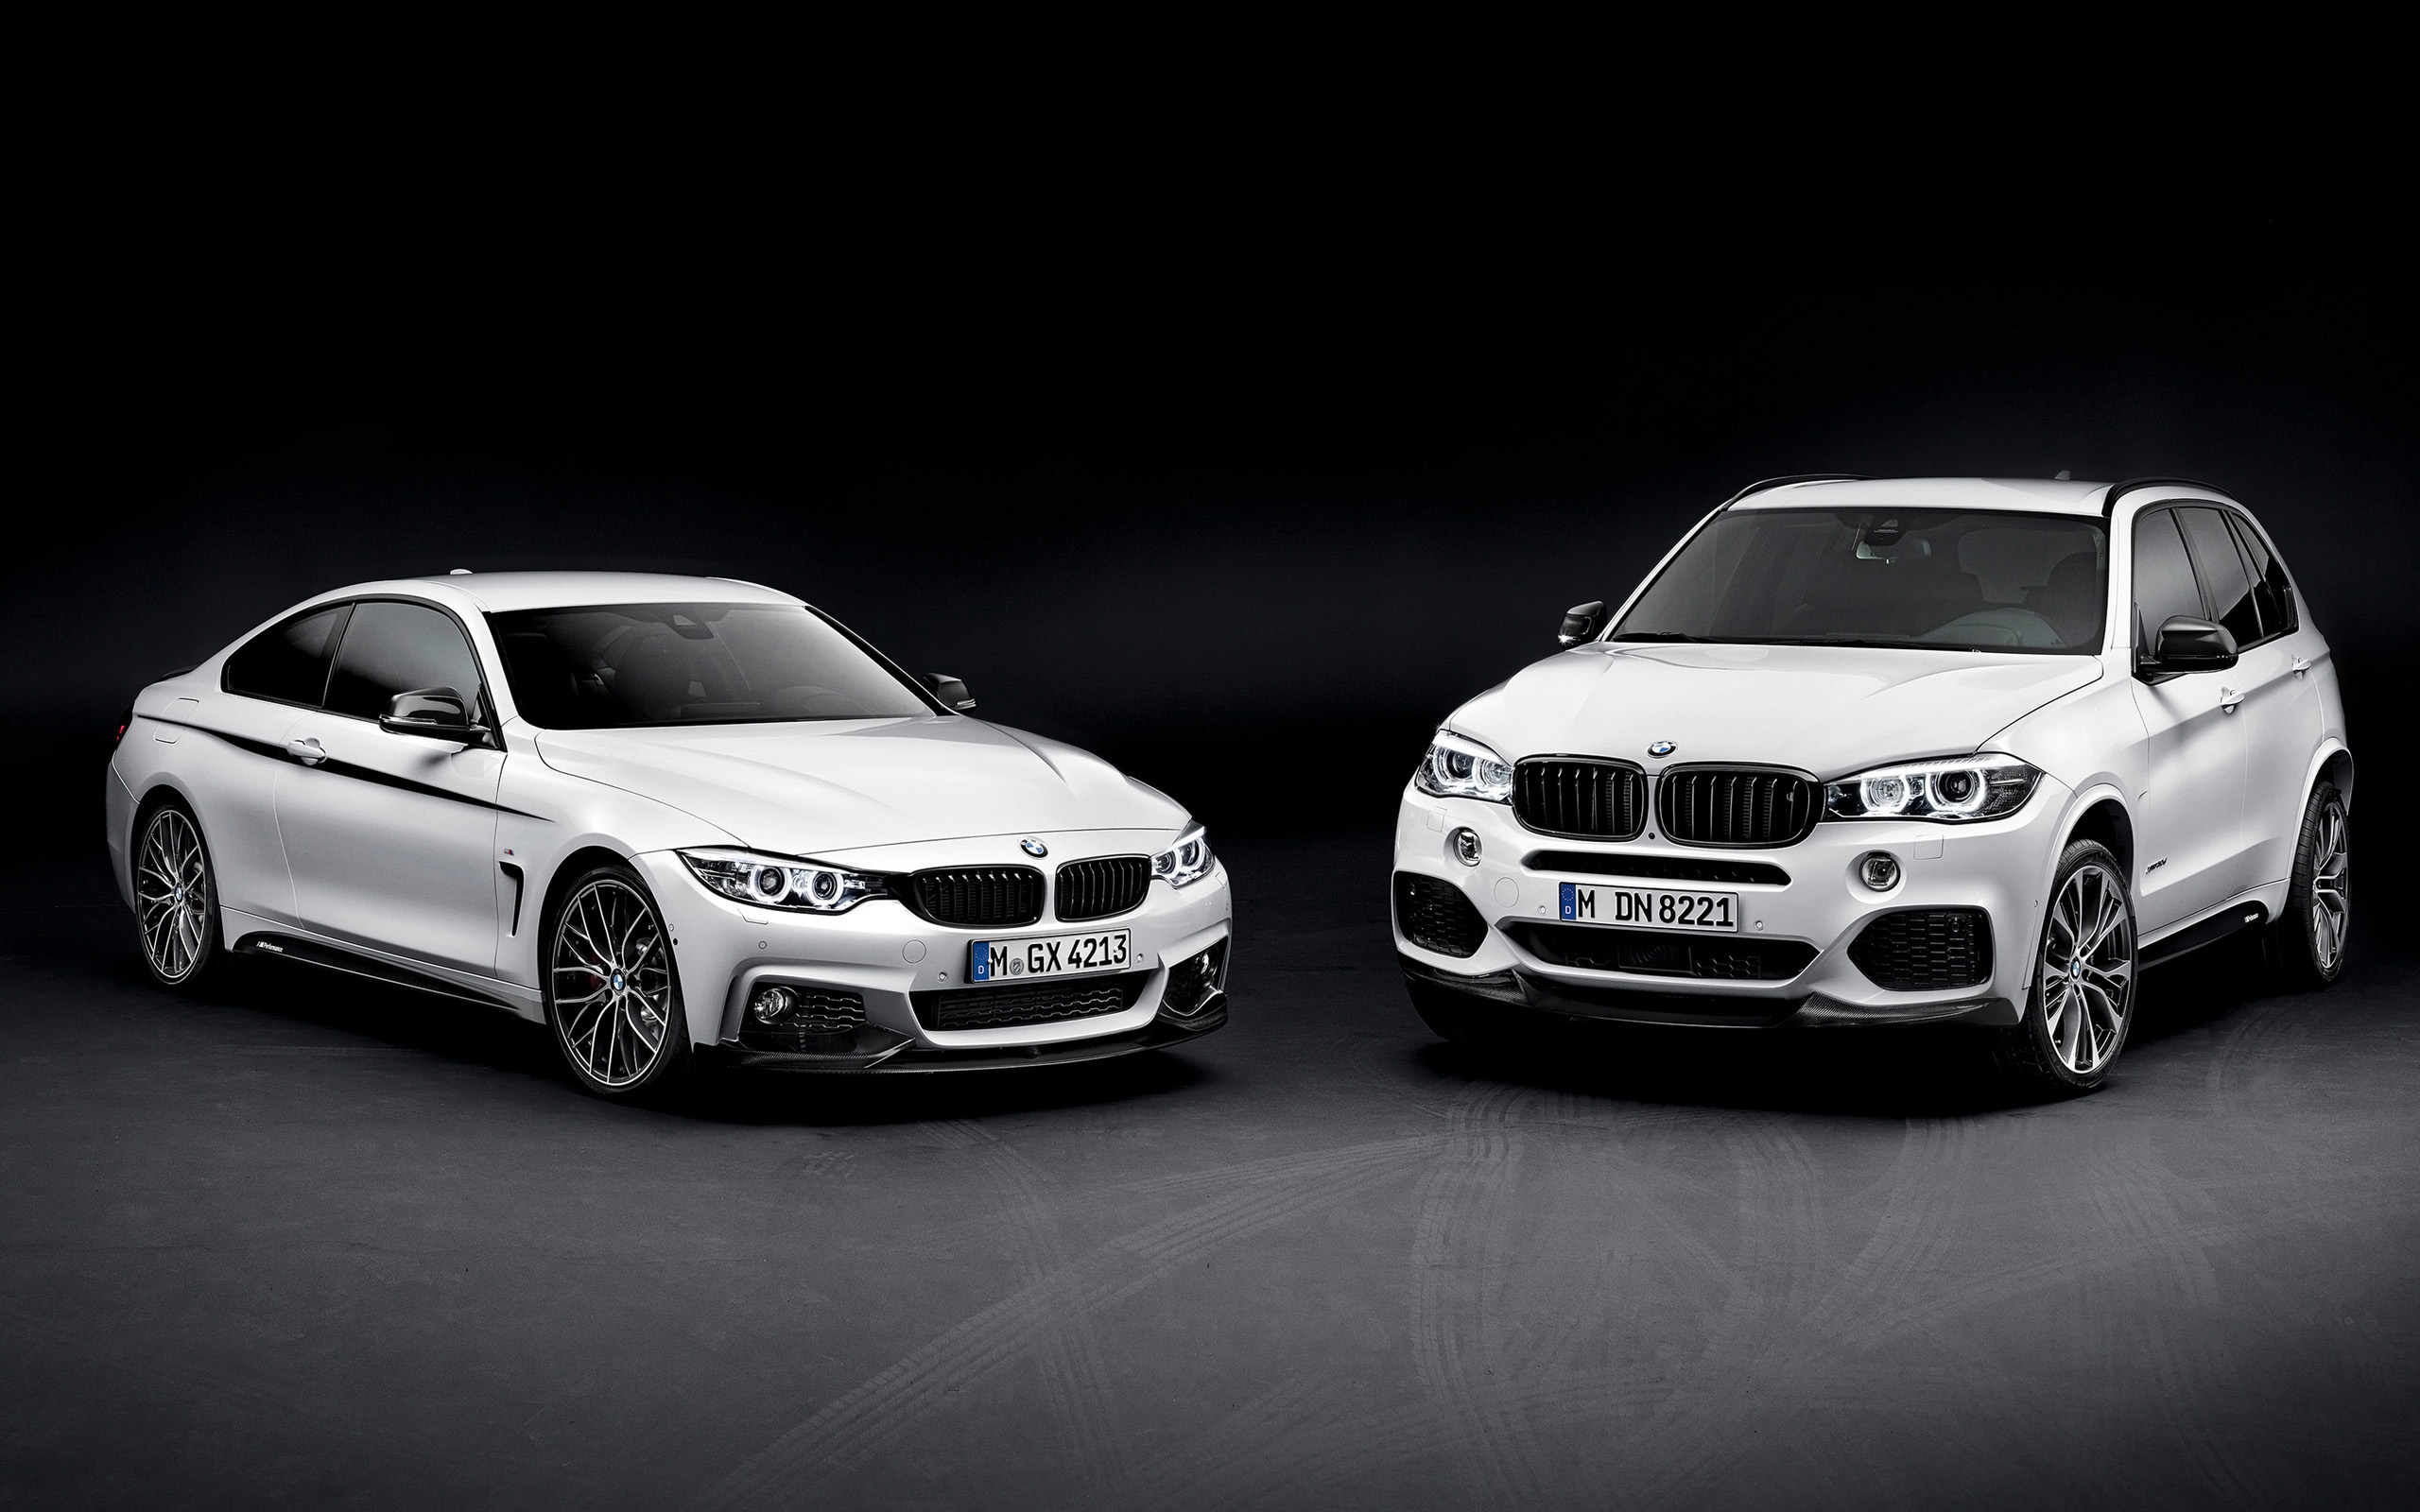 BMW X With M Performance Wallpaper HD Car Wallpapers - 2014 bmw x5 m